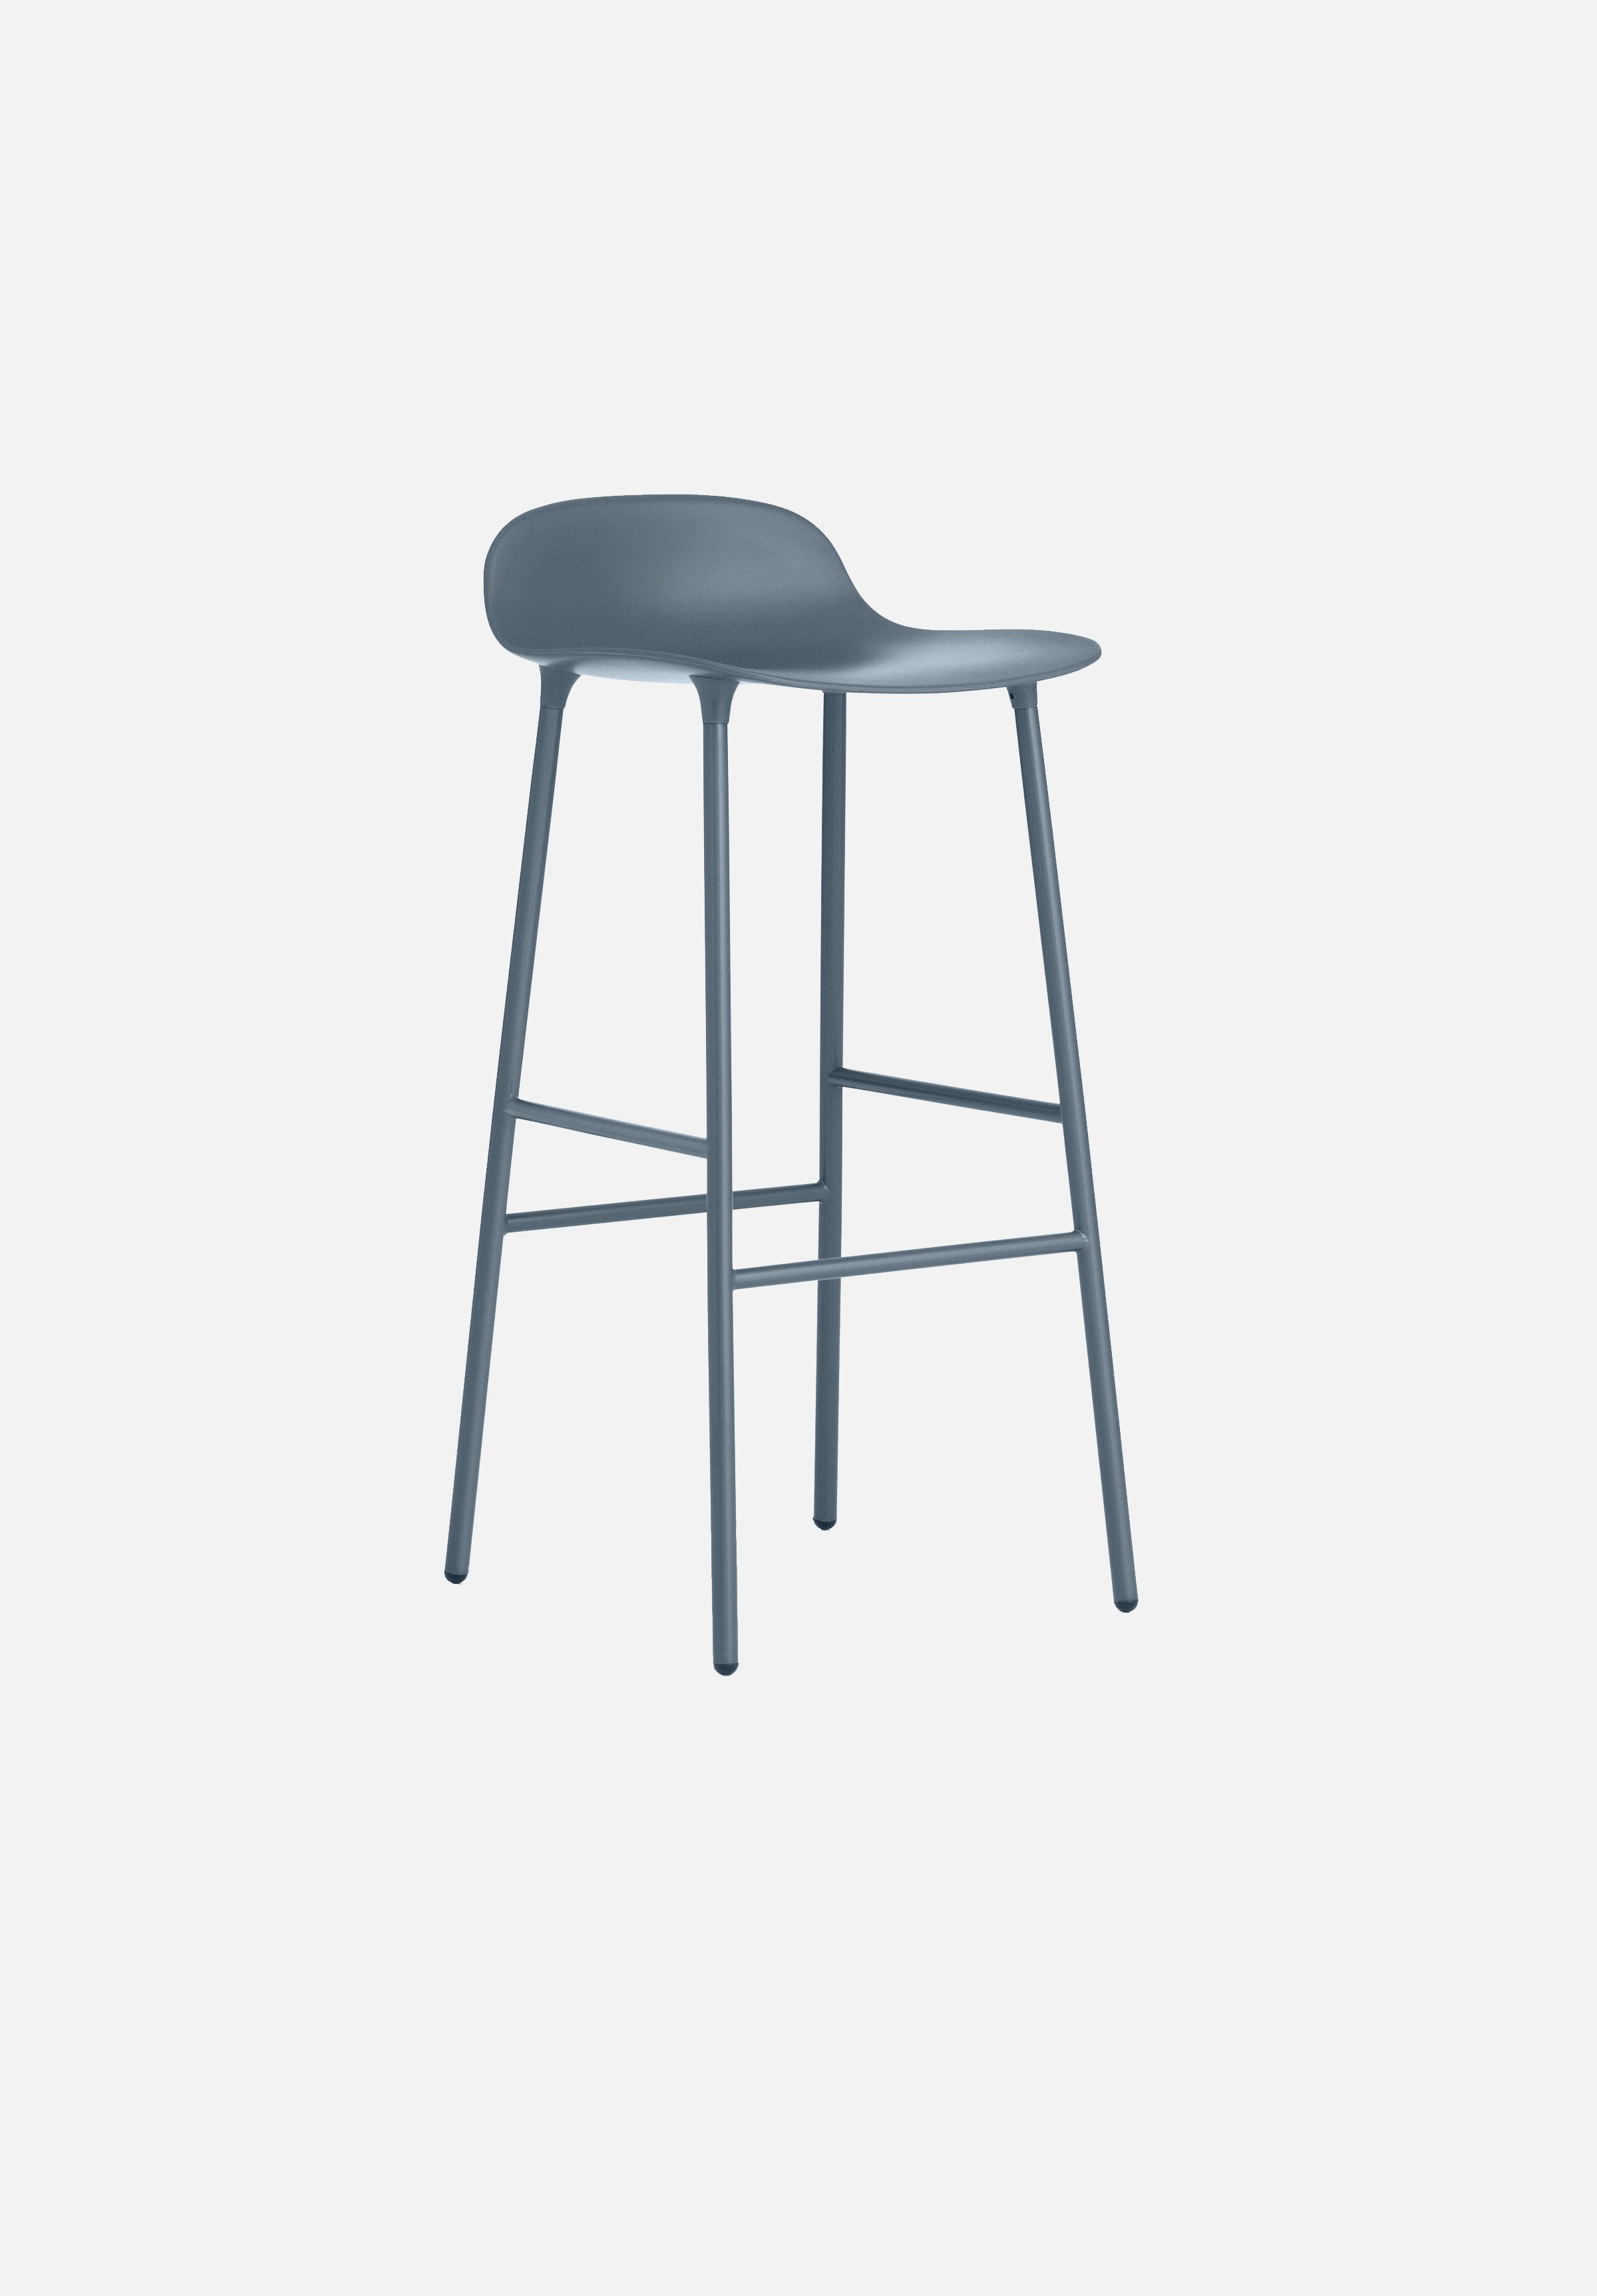 Form Stool — 75cm-Simon Legald-Normann Copenhagen-Blue-Lacquered Steel-Average-canada-design-store-danish-denmark-furniture-interior